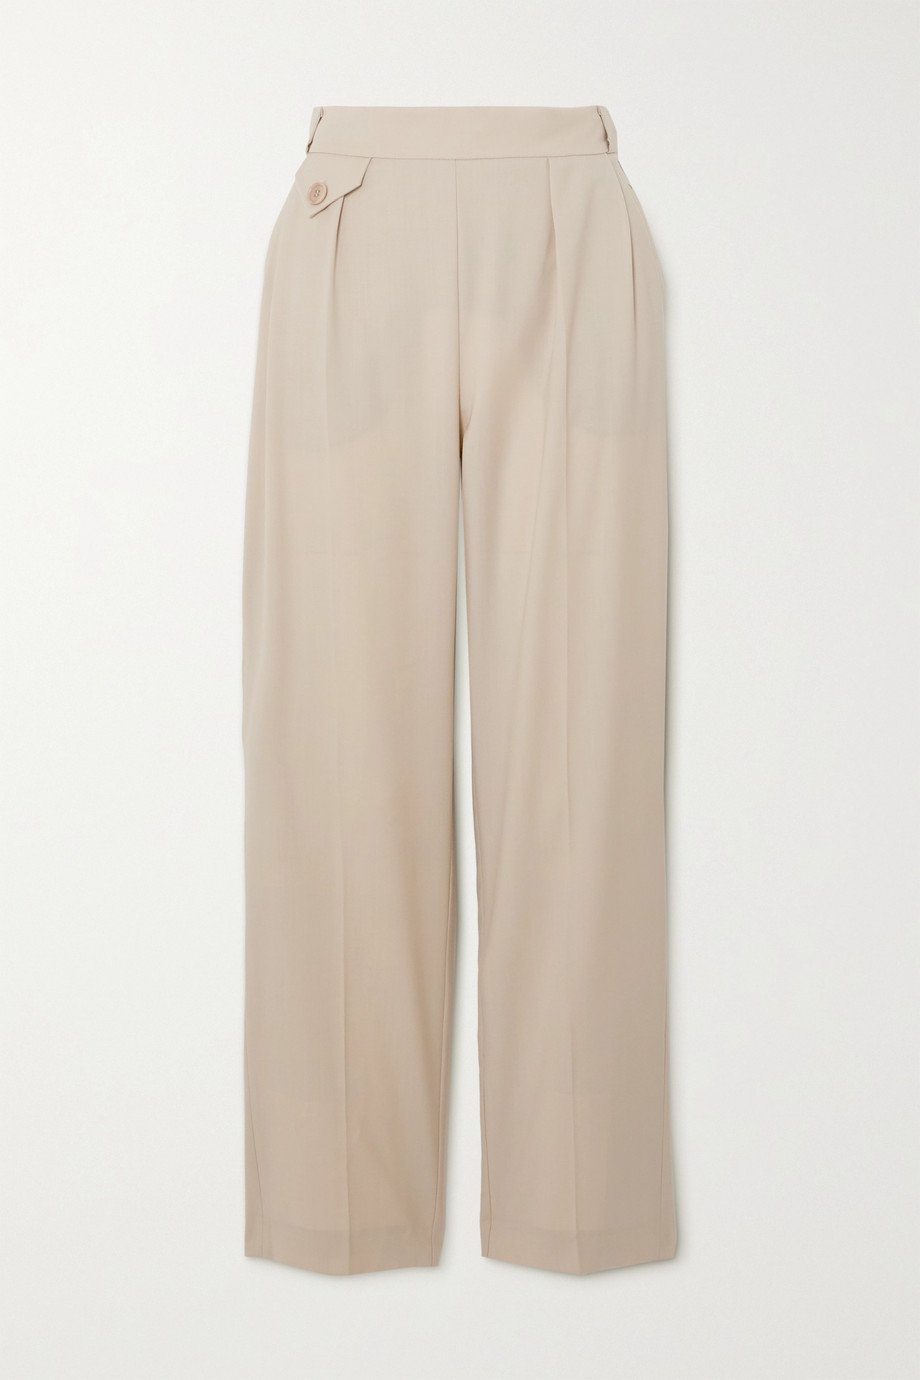 ENVELOPE1976 Marias wool tapered pants